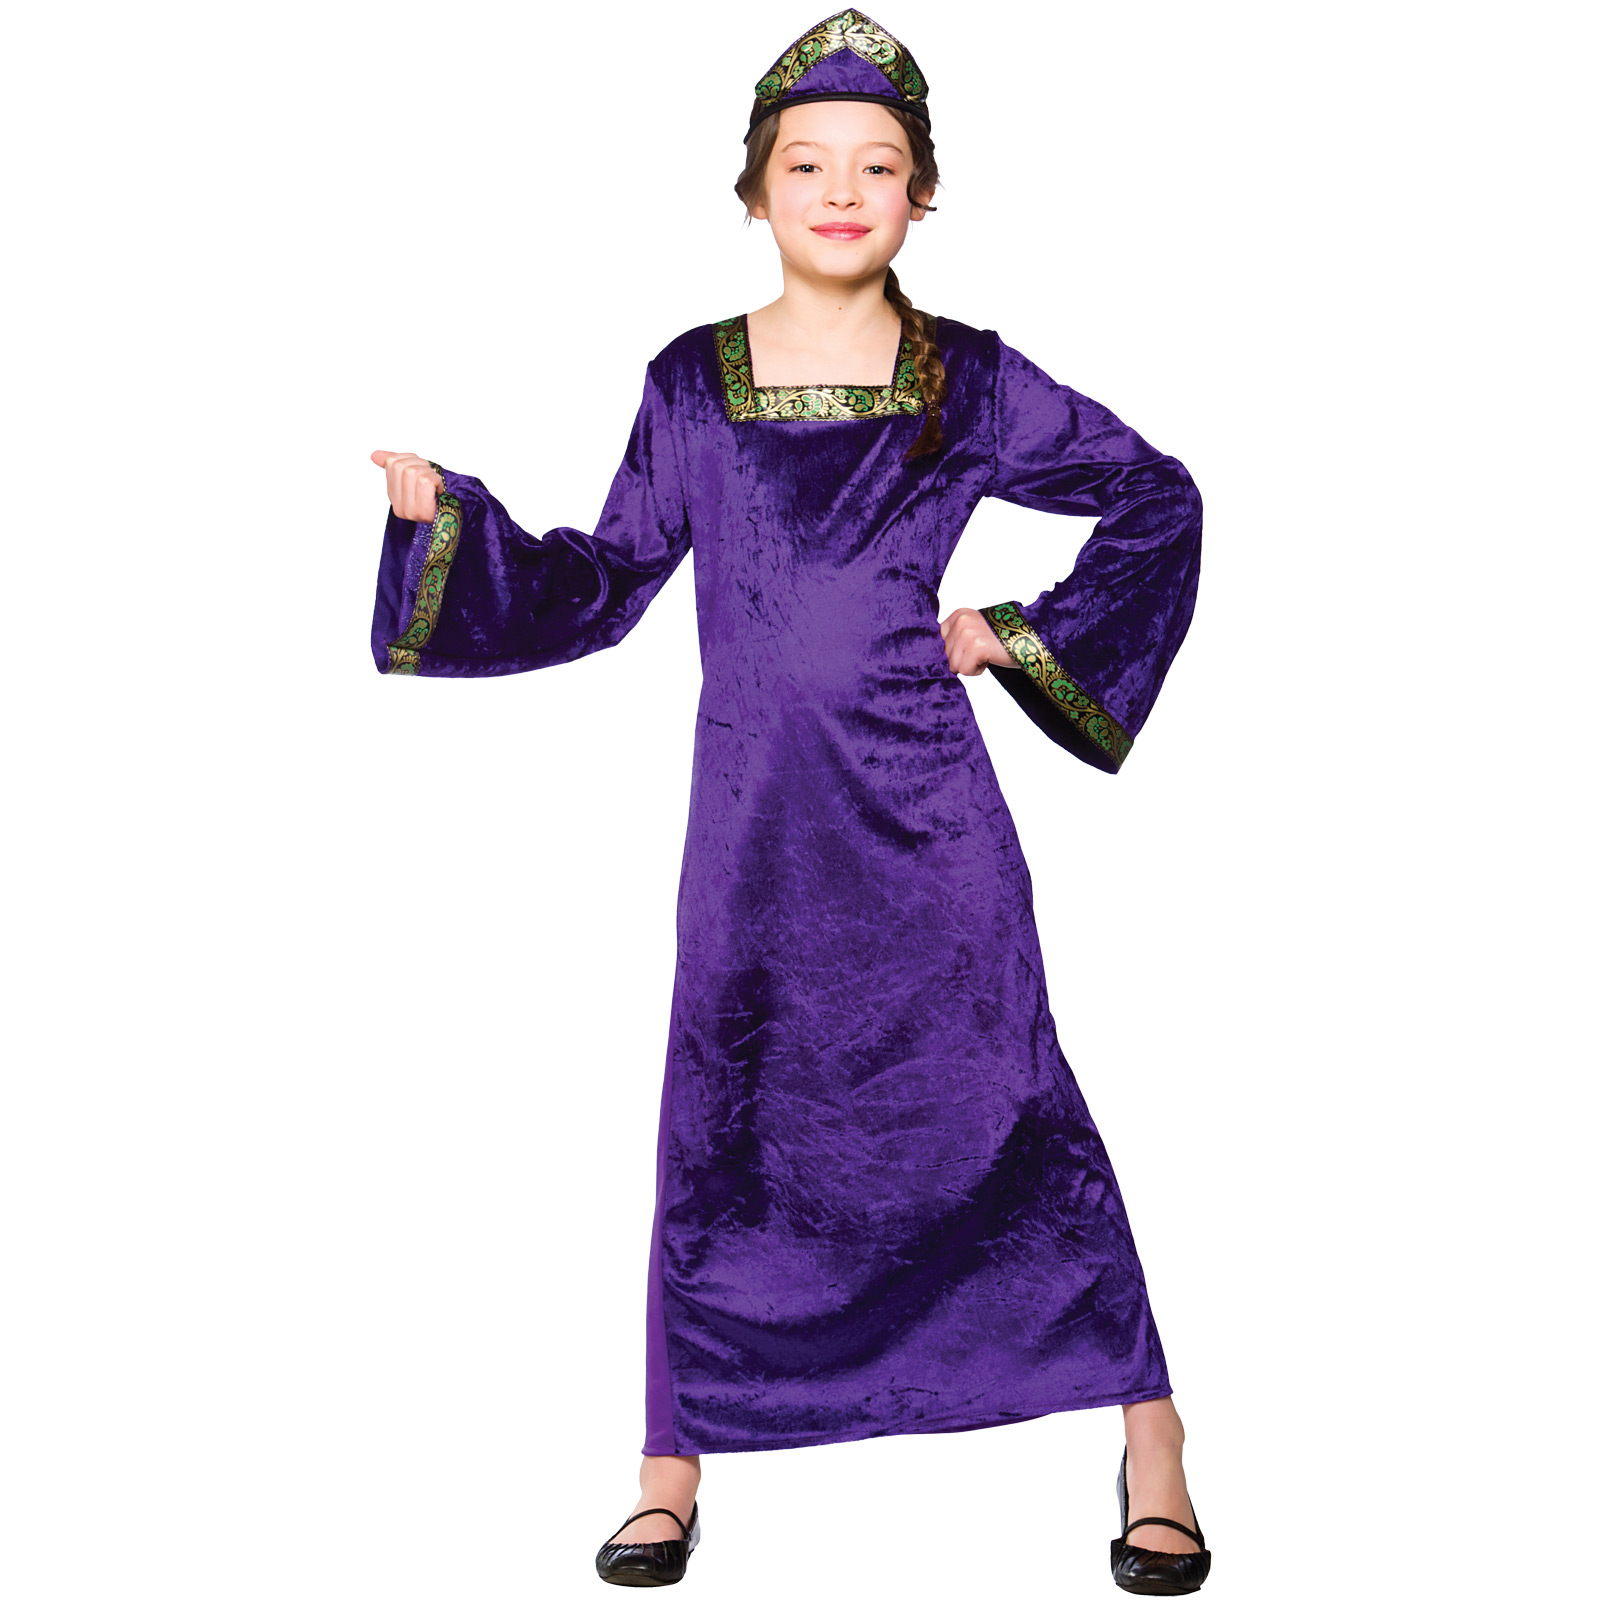 Child-Girls-Medieval-Princess-Purple-Costume-Fancy-Dress-Up-Play-Party-Halloween